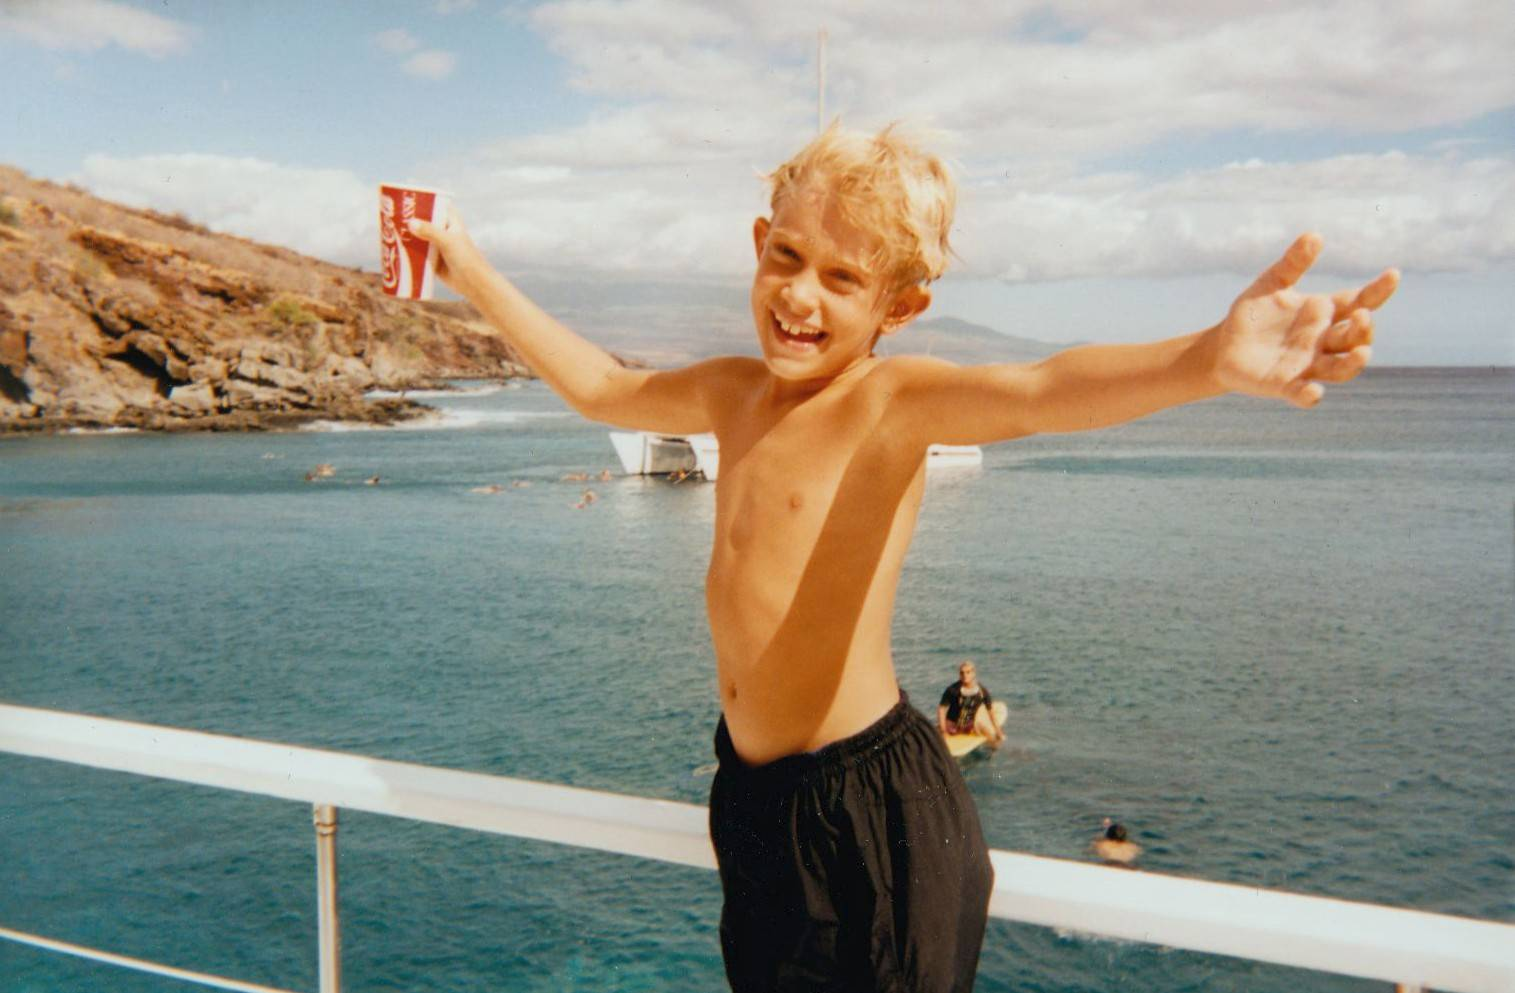 A Hawaiian cruise is something to celebrate, even for a 10-year-old.